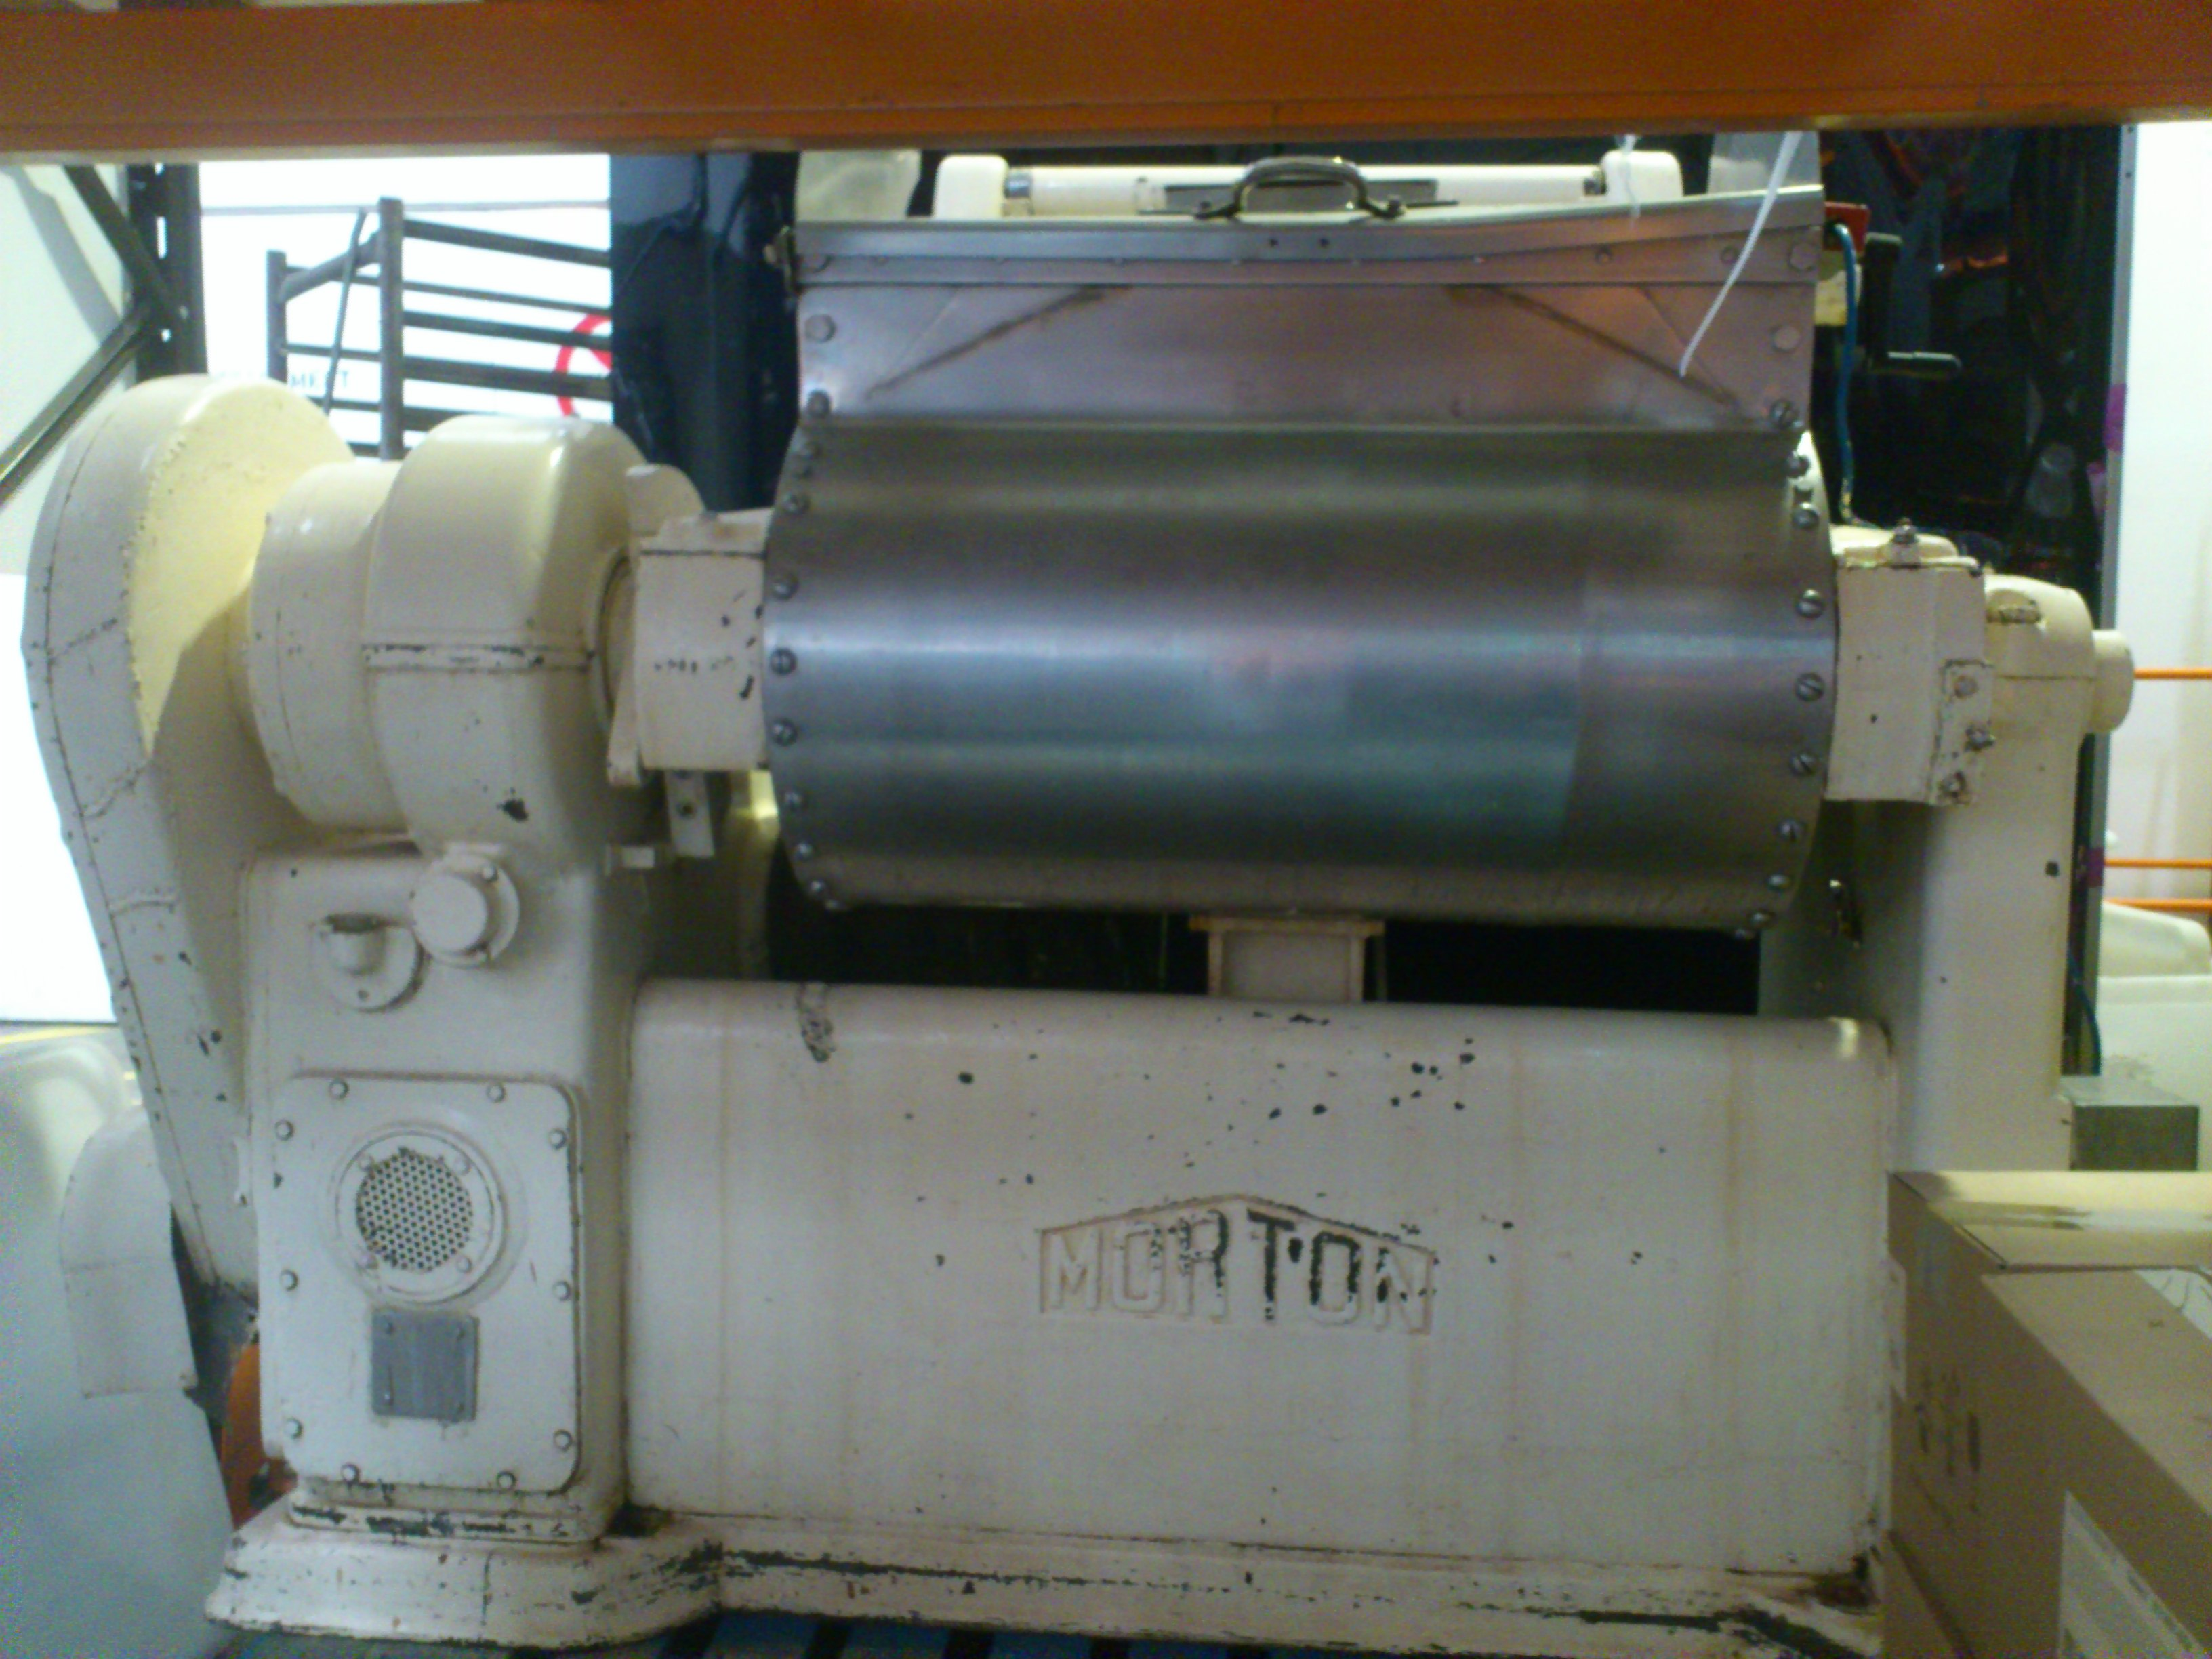 MORTON_GL55_GRIDLAP_STAINLESS_BARREL_AND_ARMS_EX_FACTORY_CONDITION_12K.jpg